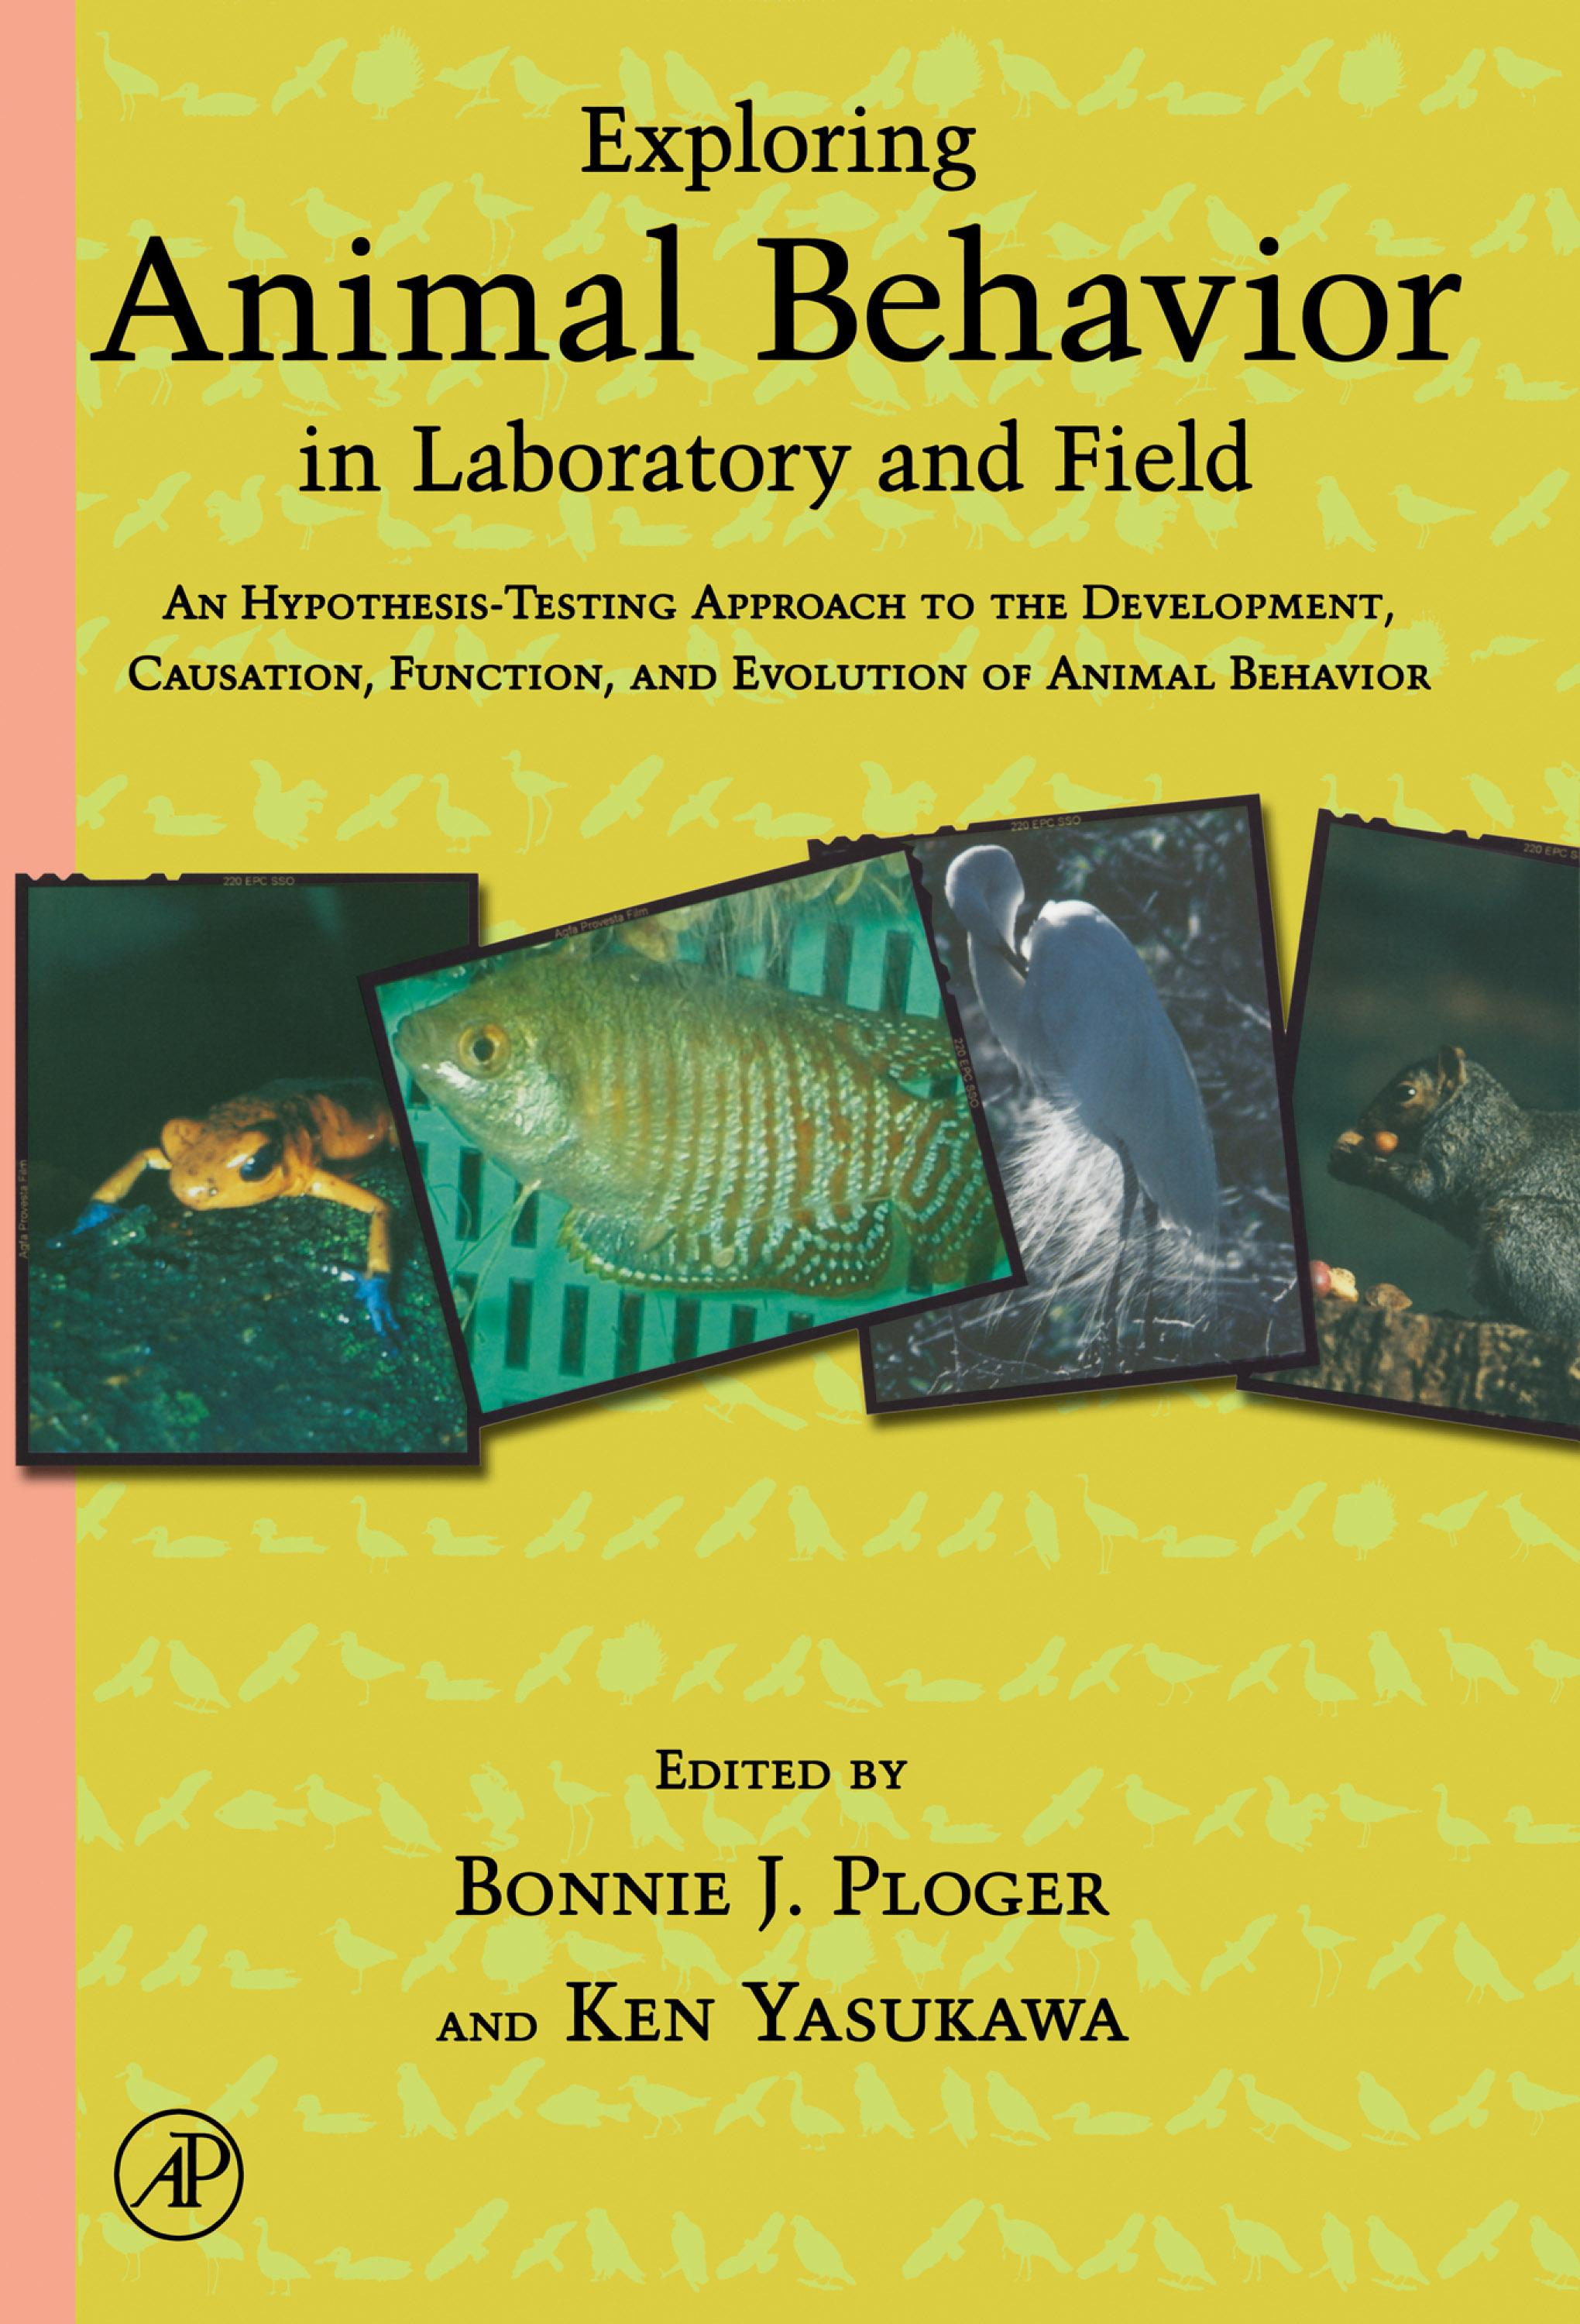 Exploring Animal Behavior in Laboratory and Field: An Hypothesis-testing Approach to the Development, Causation, Function, and Evolution of Animal Beh EB9780080506197